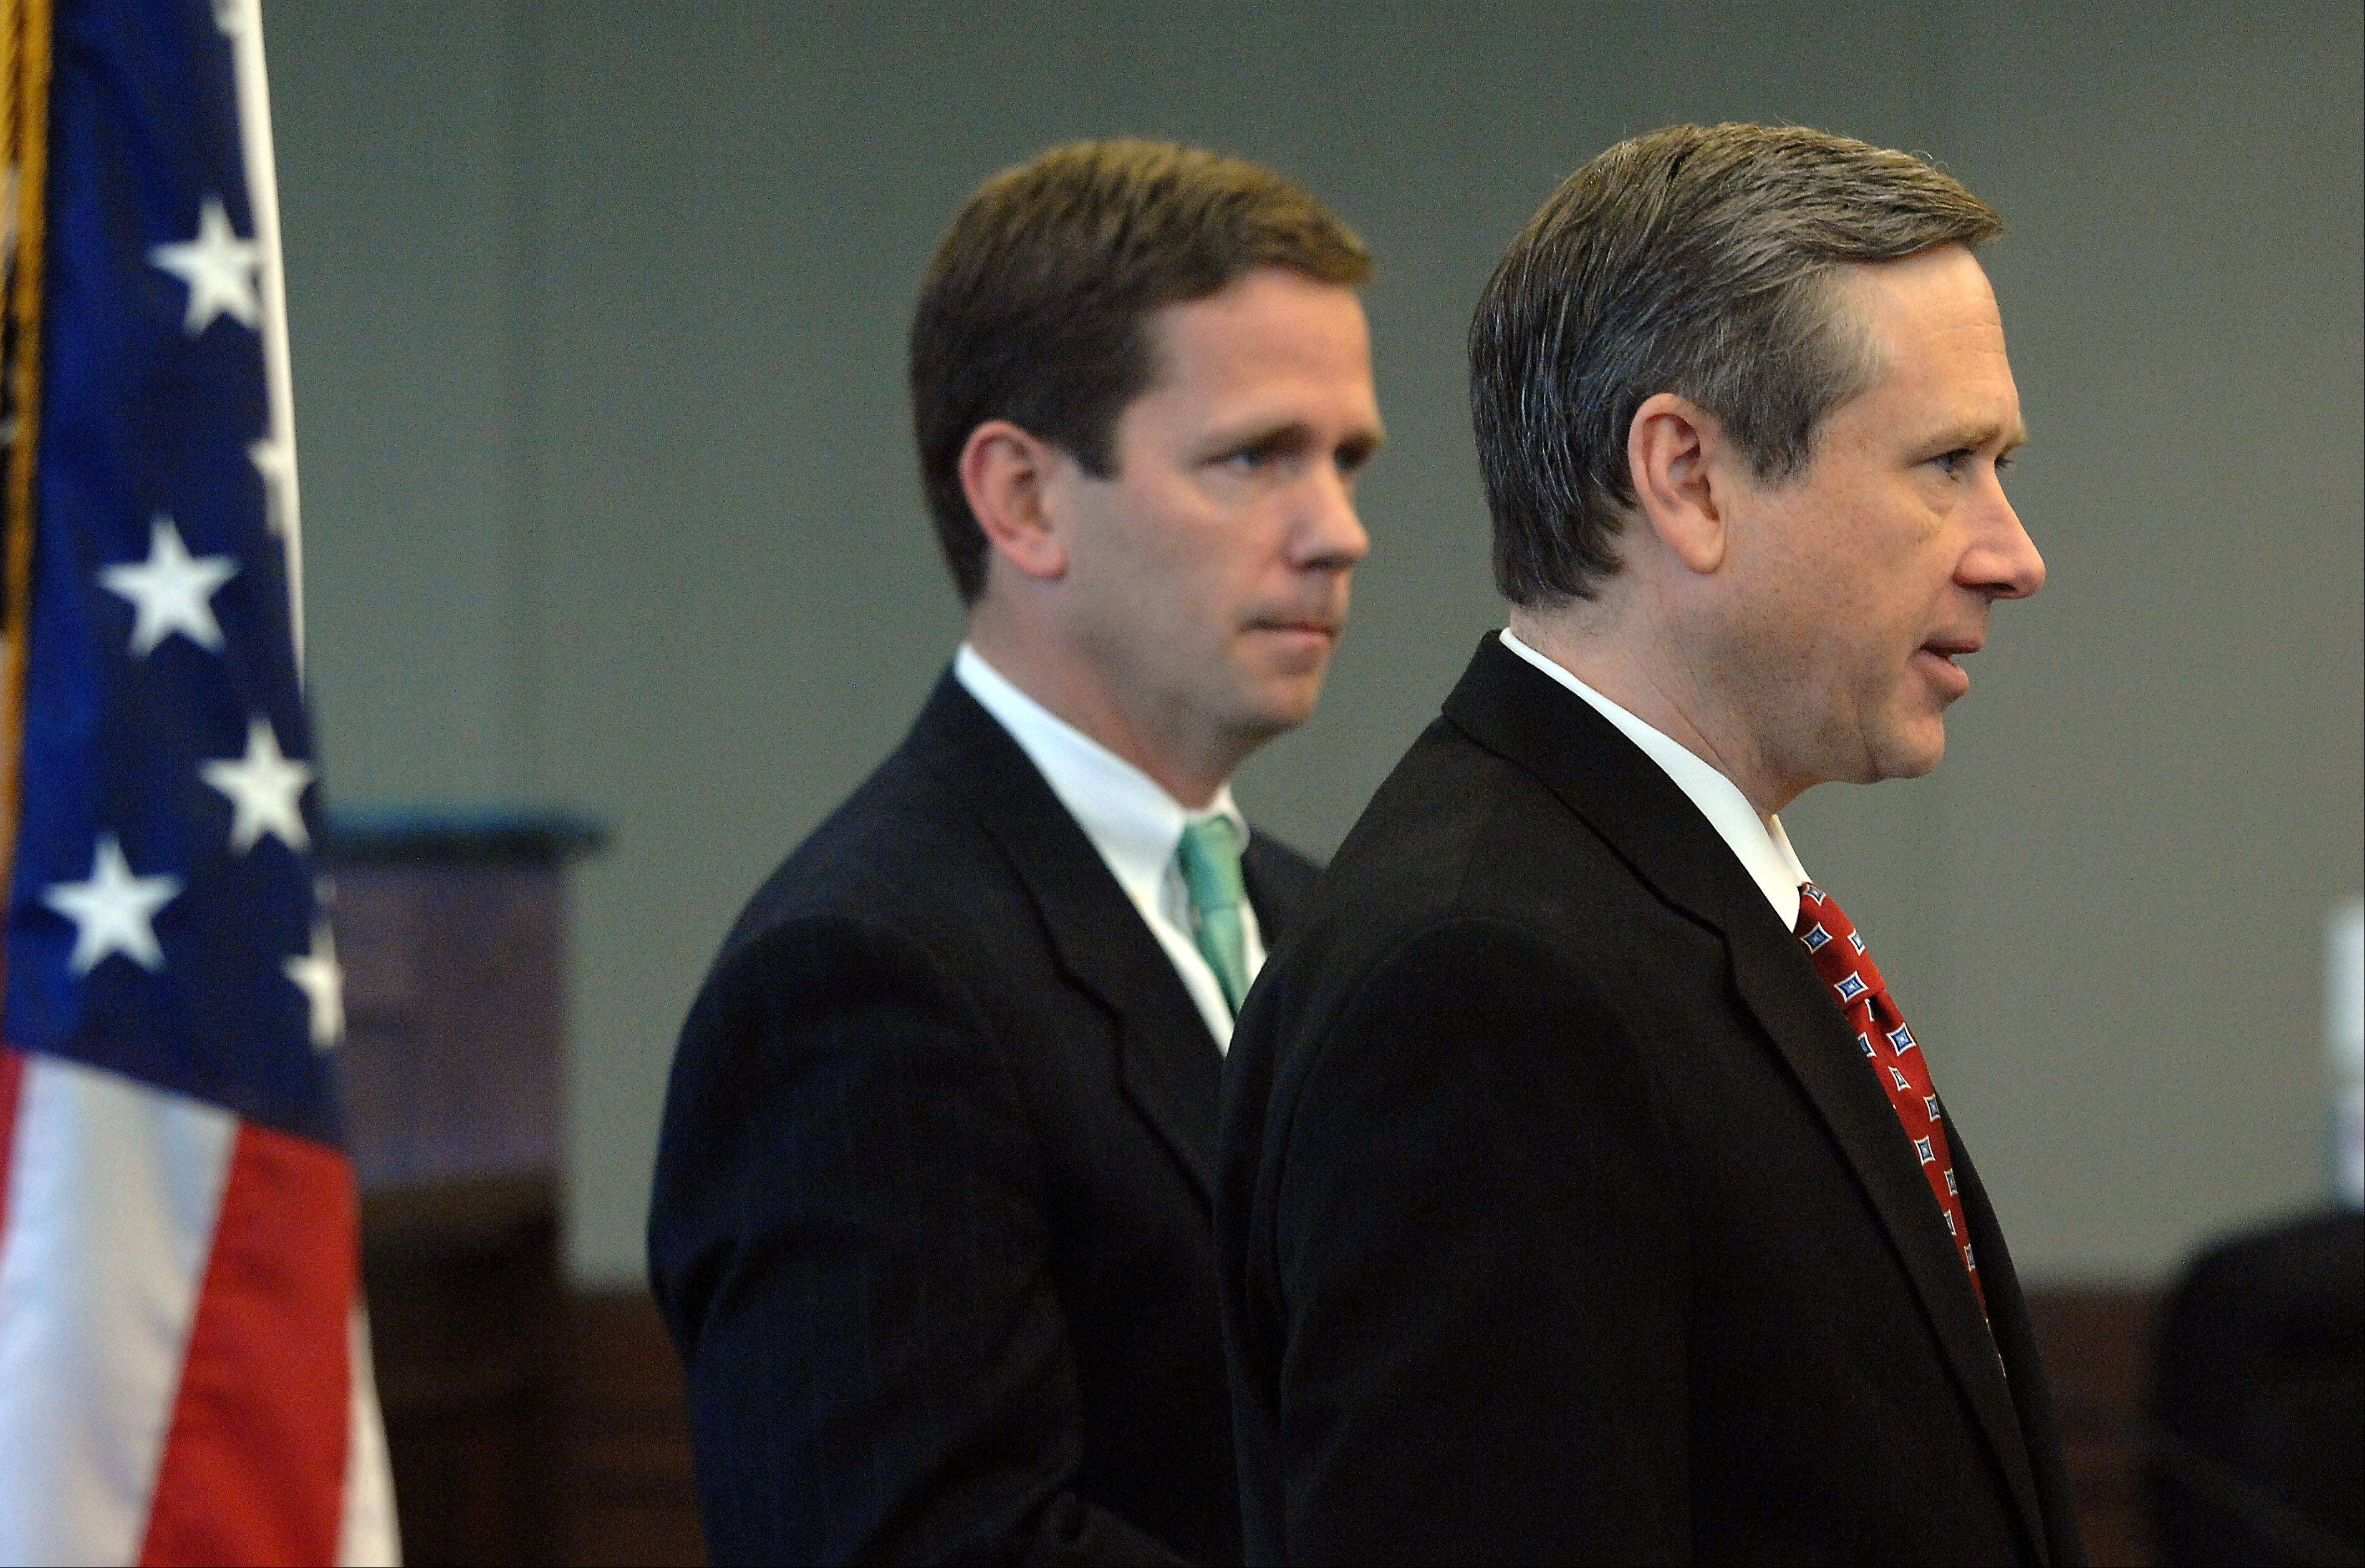 U.S. Sen. Mark Kirk, shown before his stroke in January, stands with Republican Rep. Bob Dold, at left.